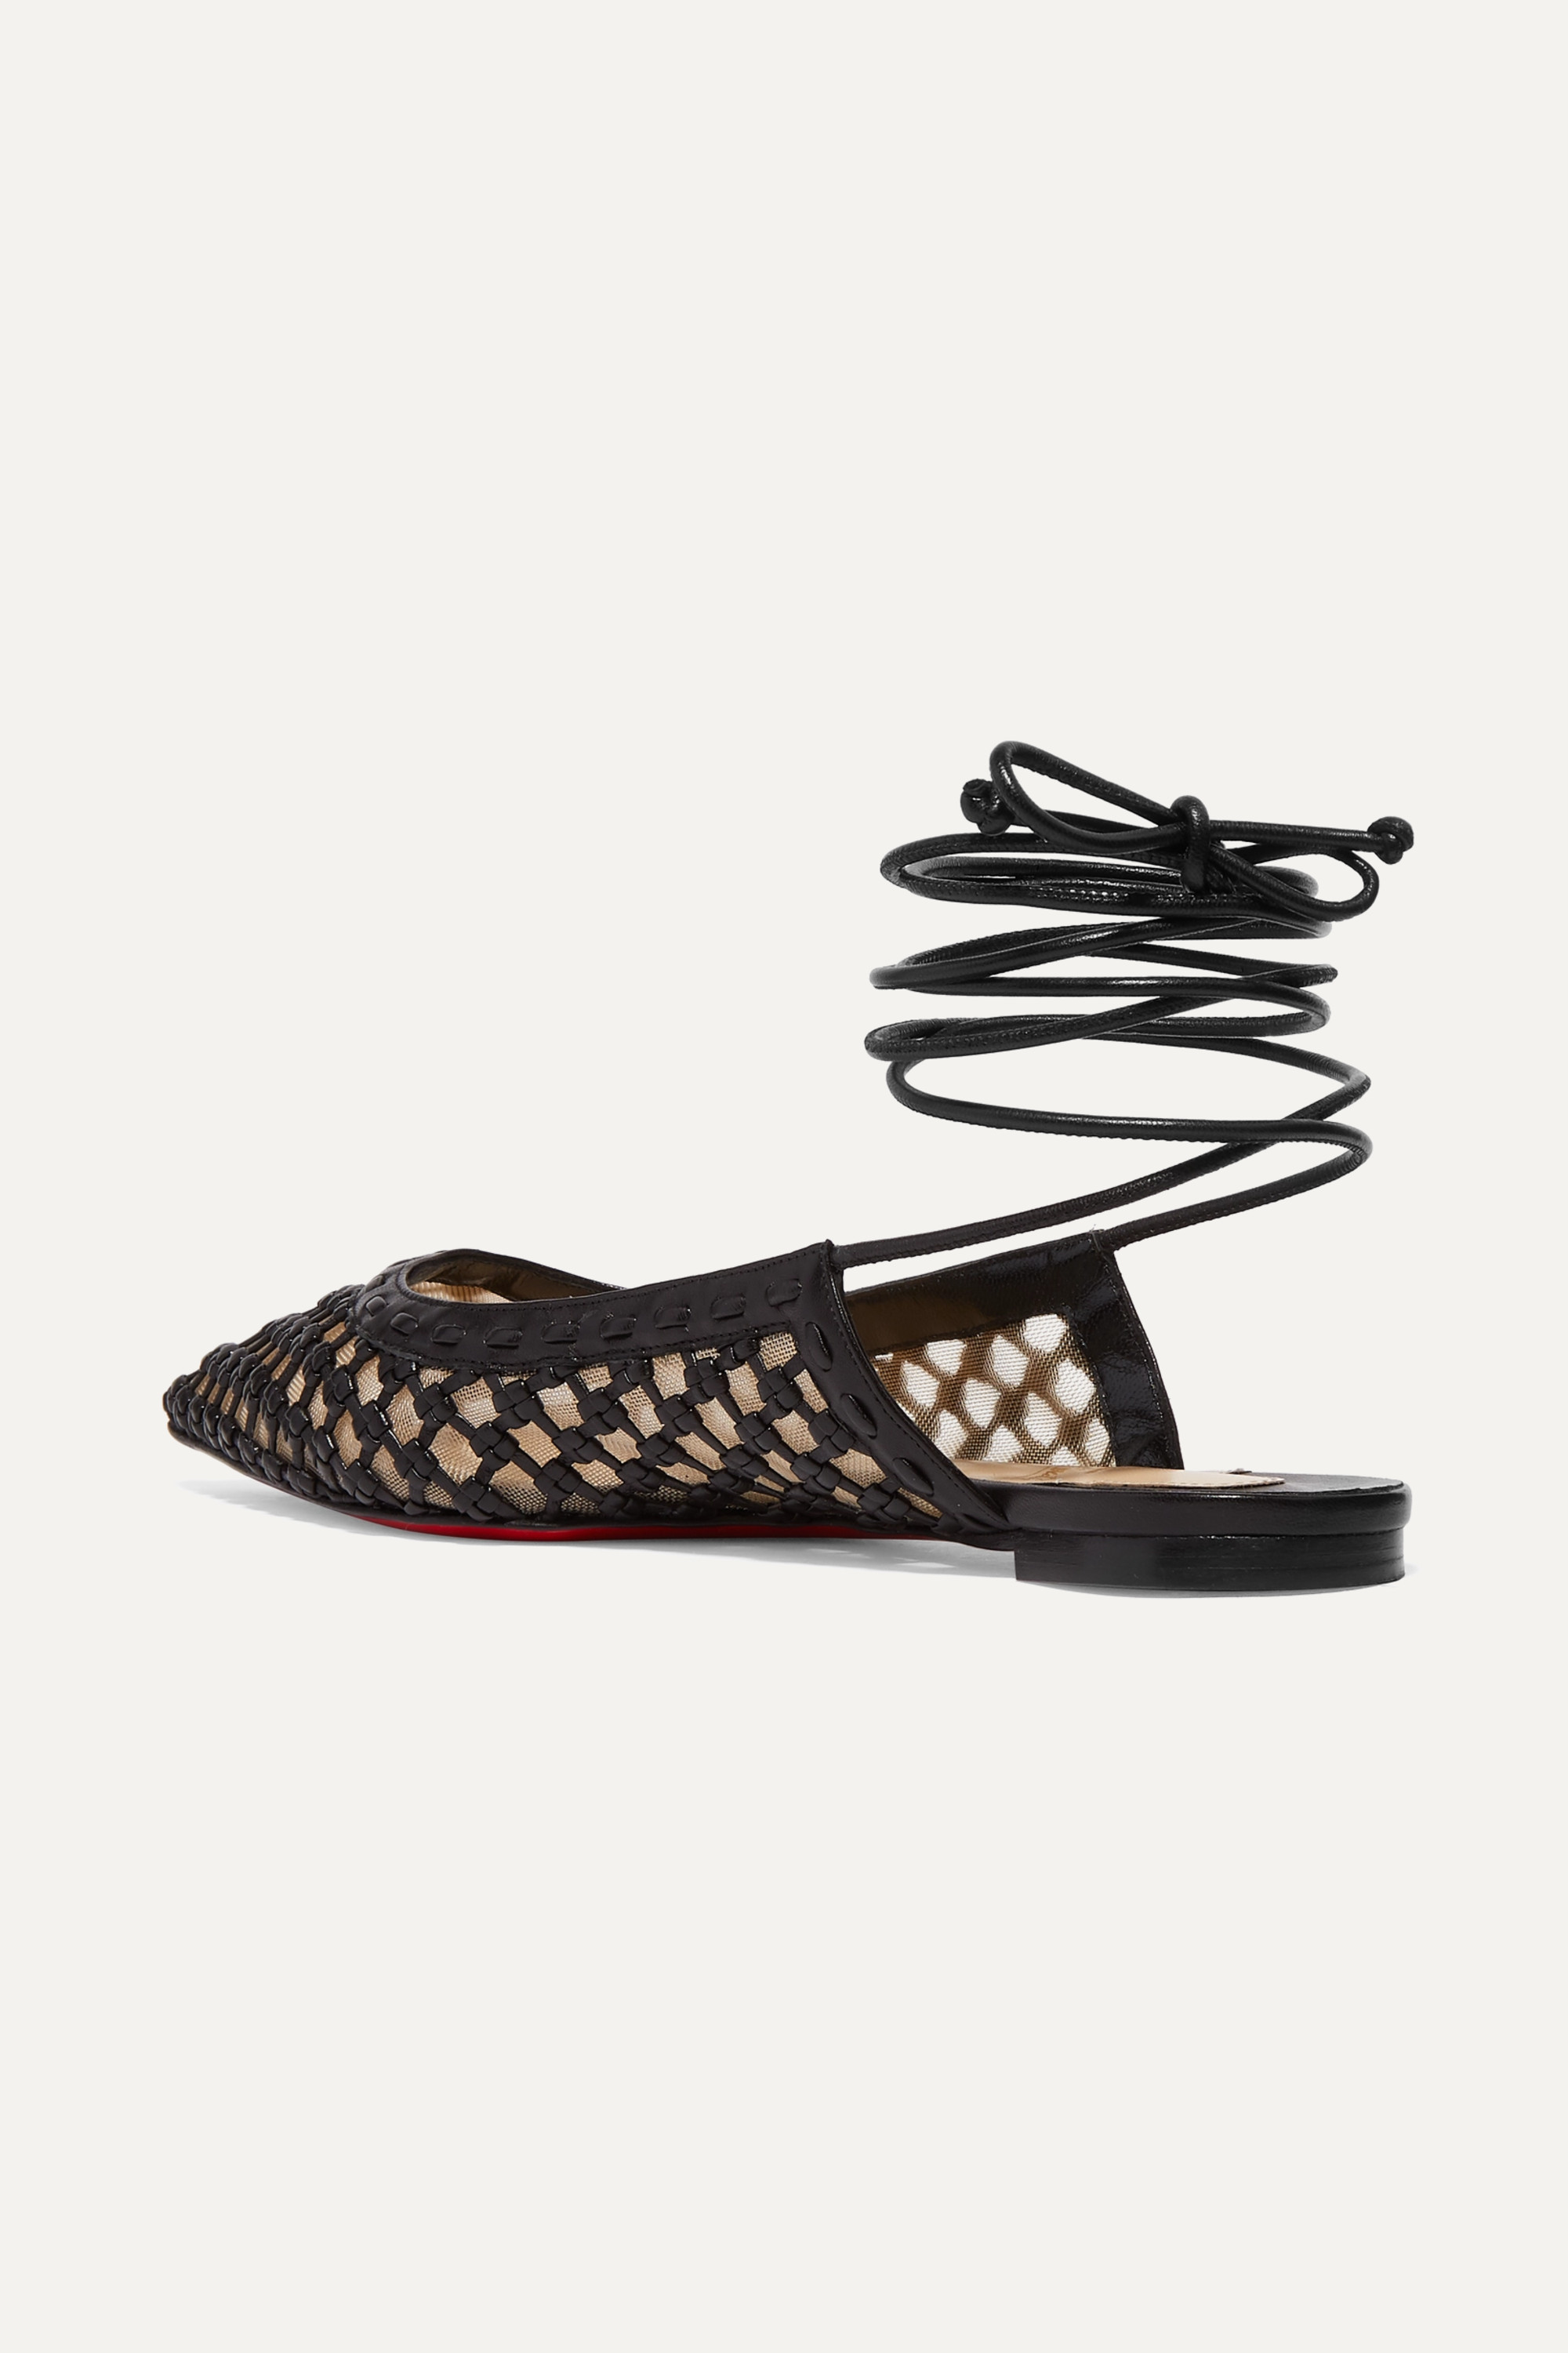 Christian Louboutin Cage and Curry woven leather and mesh point-toe flats